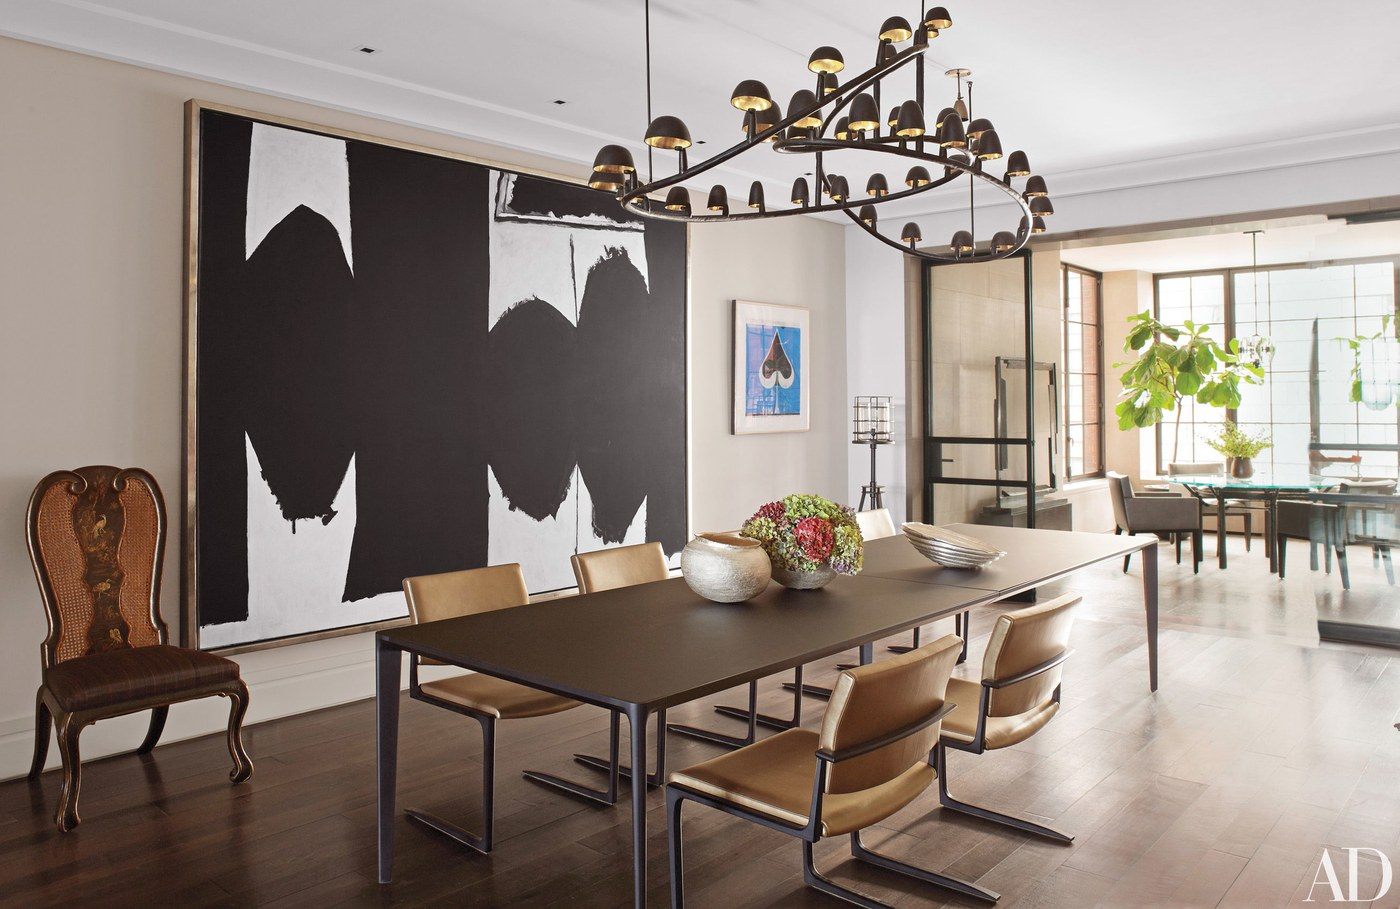 Women Empowerment - Holly Hunt's Chicago Apartment - holly hunt art collection - holly hunt showroom - holly hunt furniture - holly hunts home - Photo by Pieter Estersohn via architectural digest